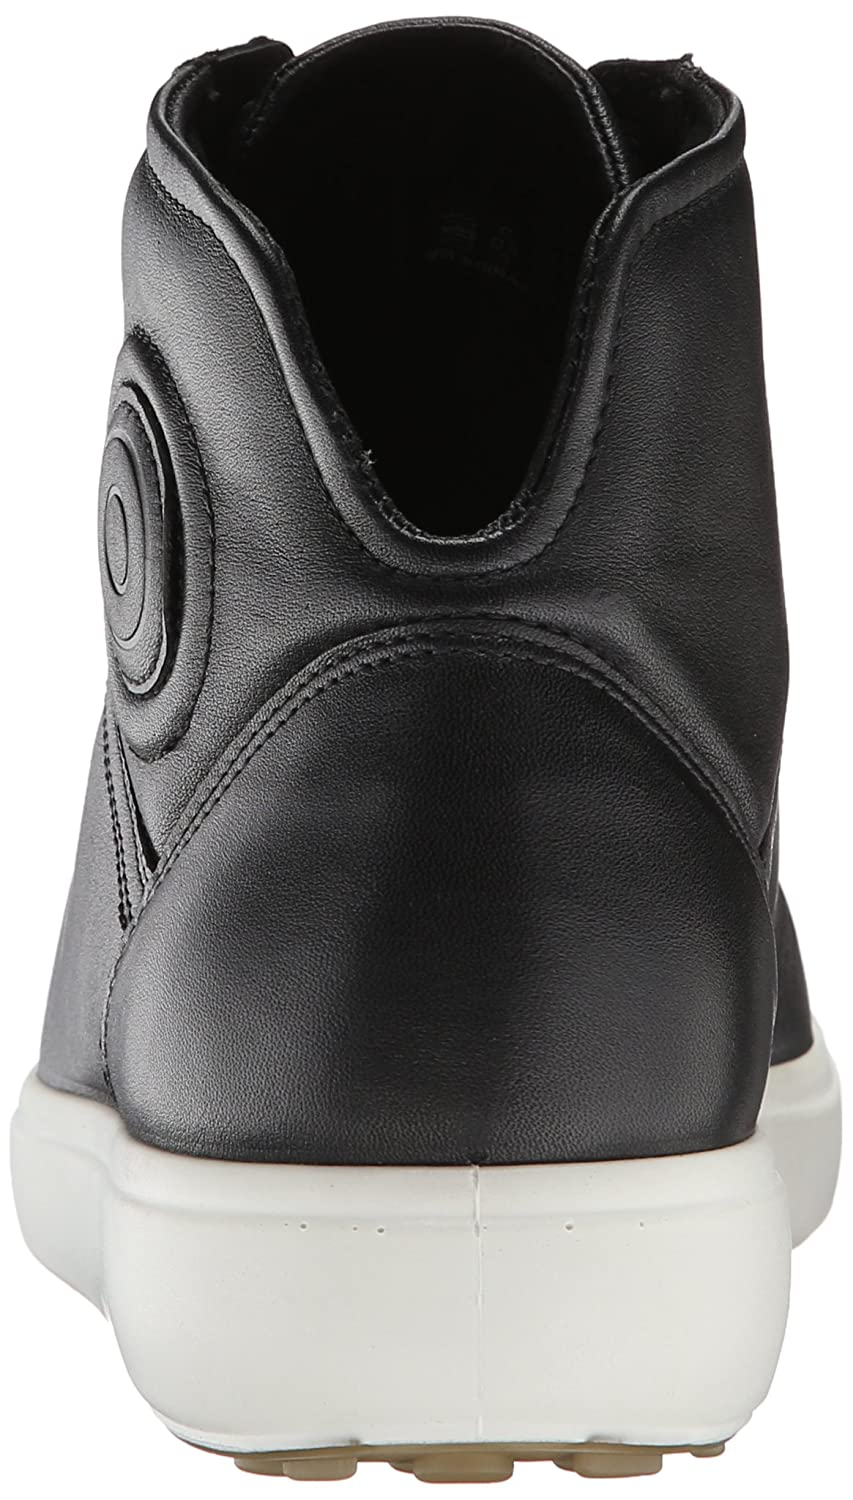 ECCO B00RC7QV66 Womens Soft VII High-Top Fashion Sneaker B00RC7QV66 ECCO 38 EU/7-7.5 M US|Black d94151